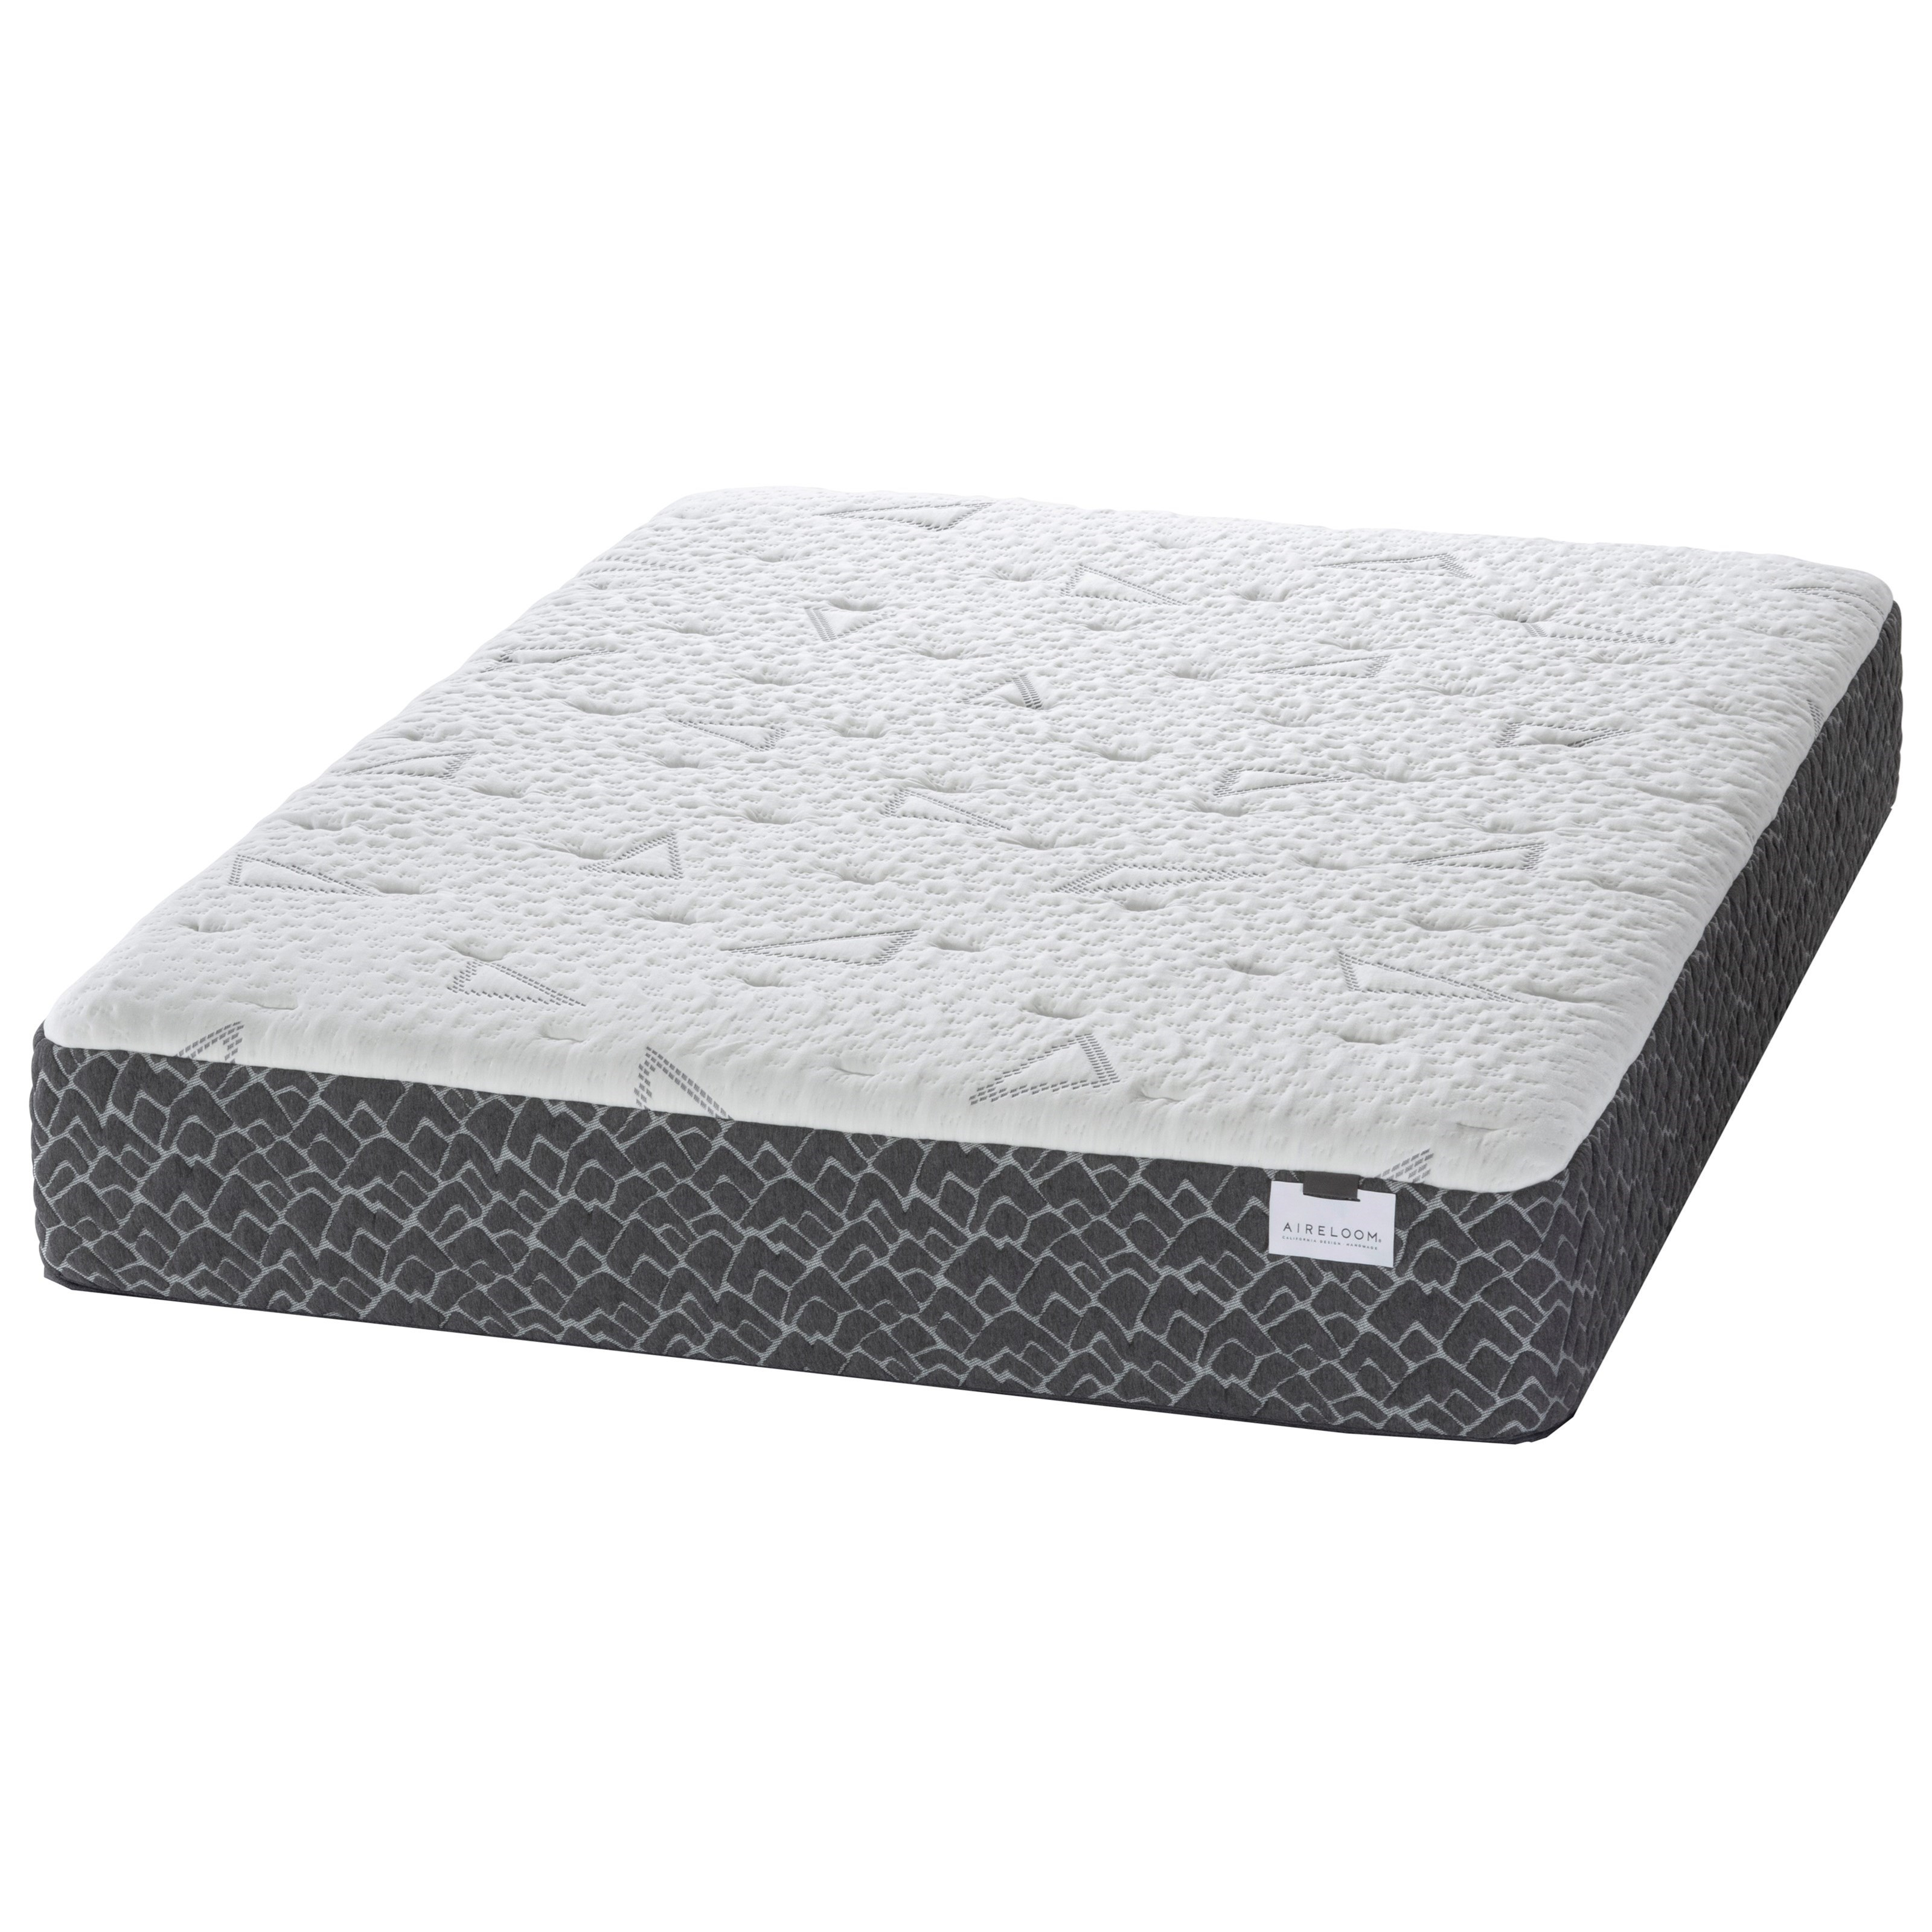 """Russell Firm Hybrid King 11"""" Firm Hybrid Mattress by Aireloom Bedding at Pilgrim Furniture City"""